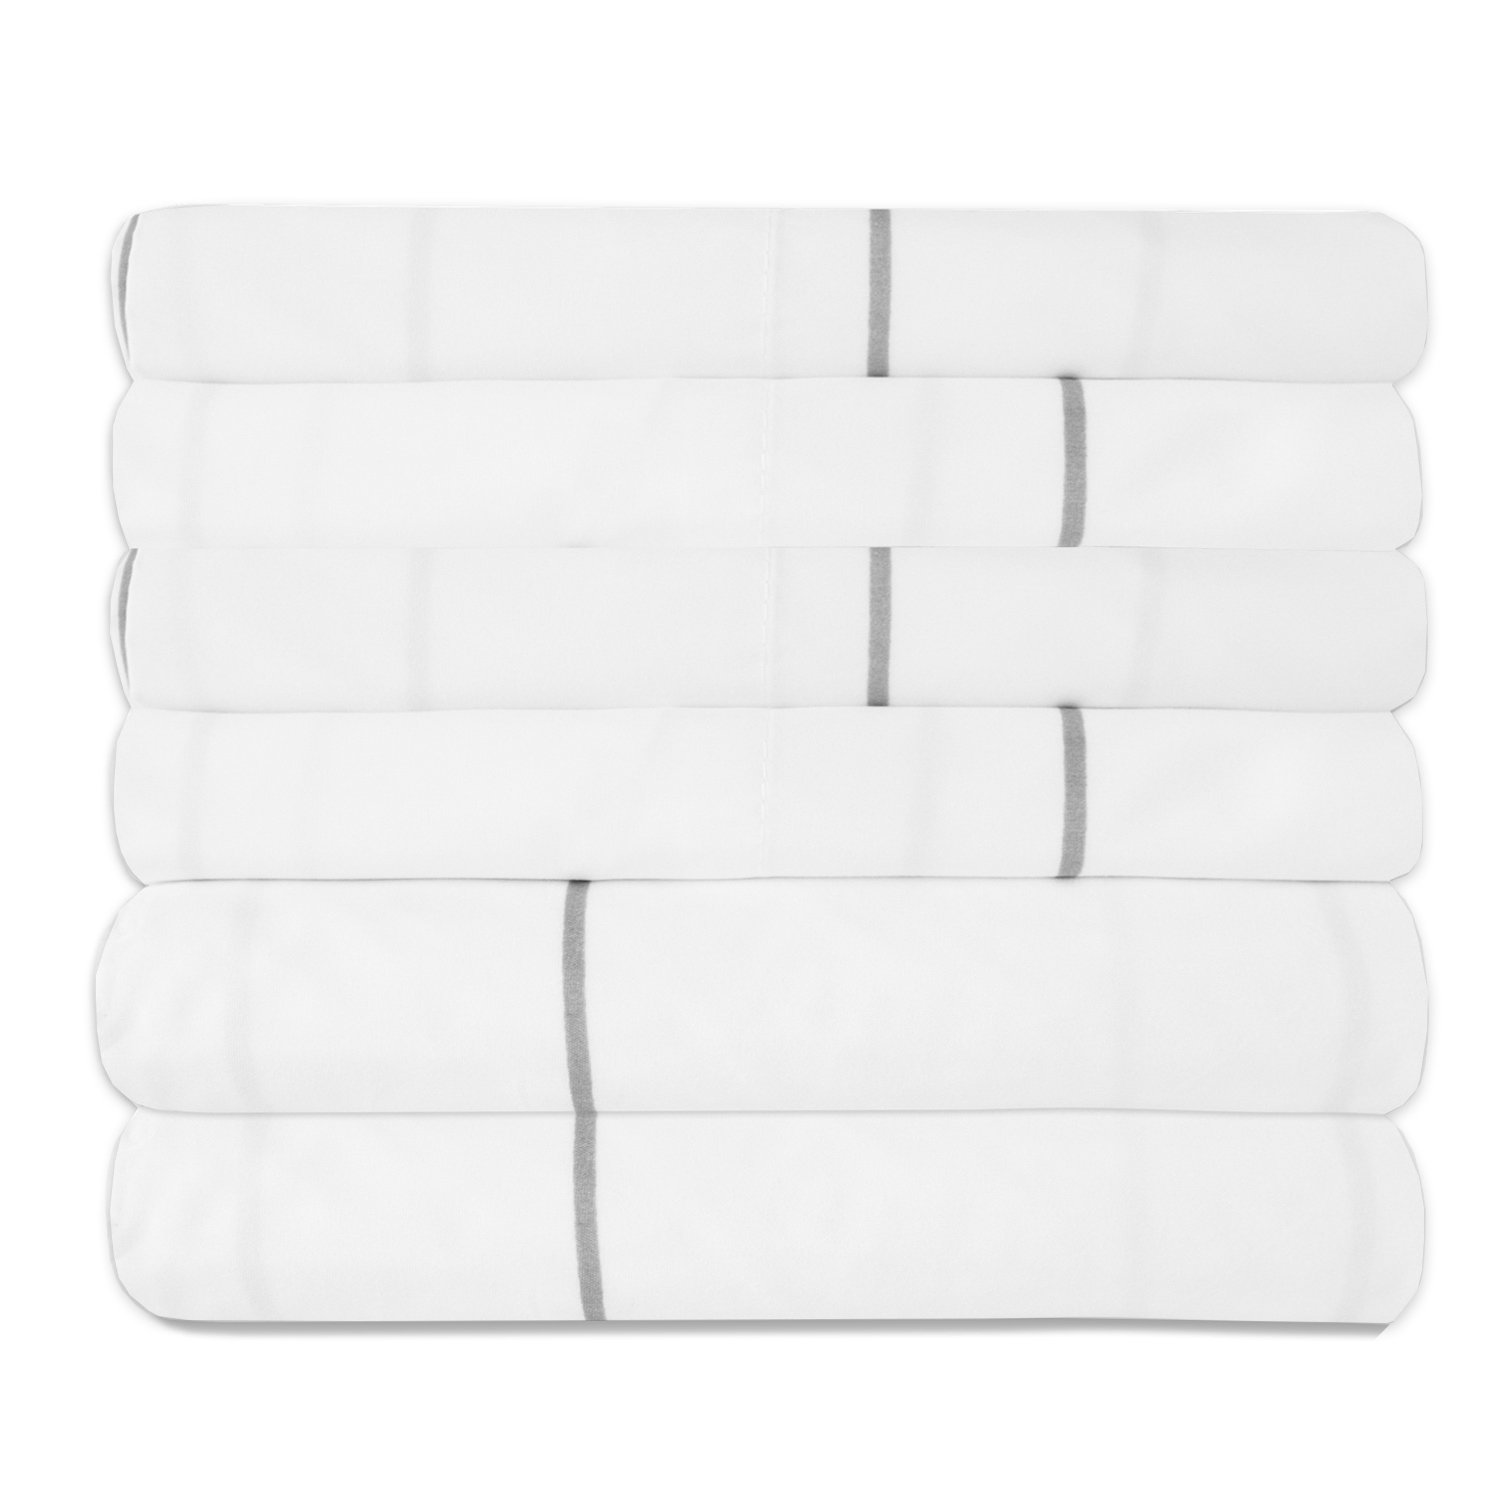 Sweet Home Collection Quality Deep Pocket Bed Sheet Set 2 Extra Pillow Cases, Great Value, Twin, Window Pane White, 4 Piece